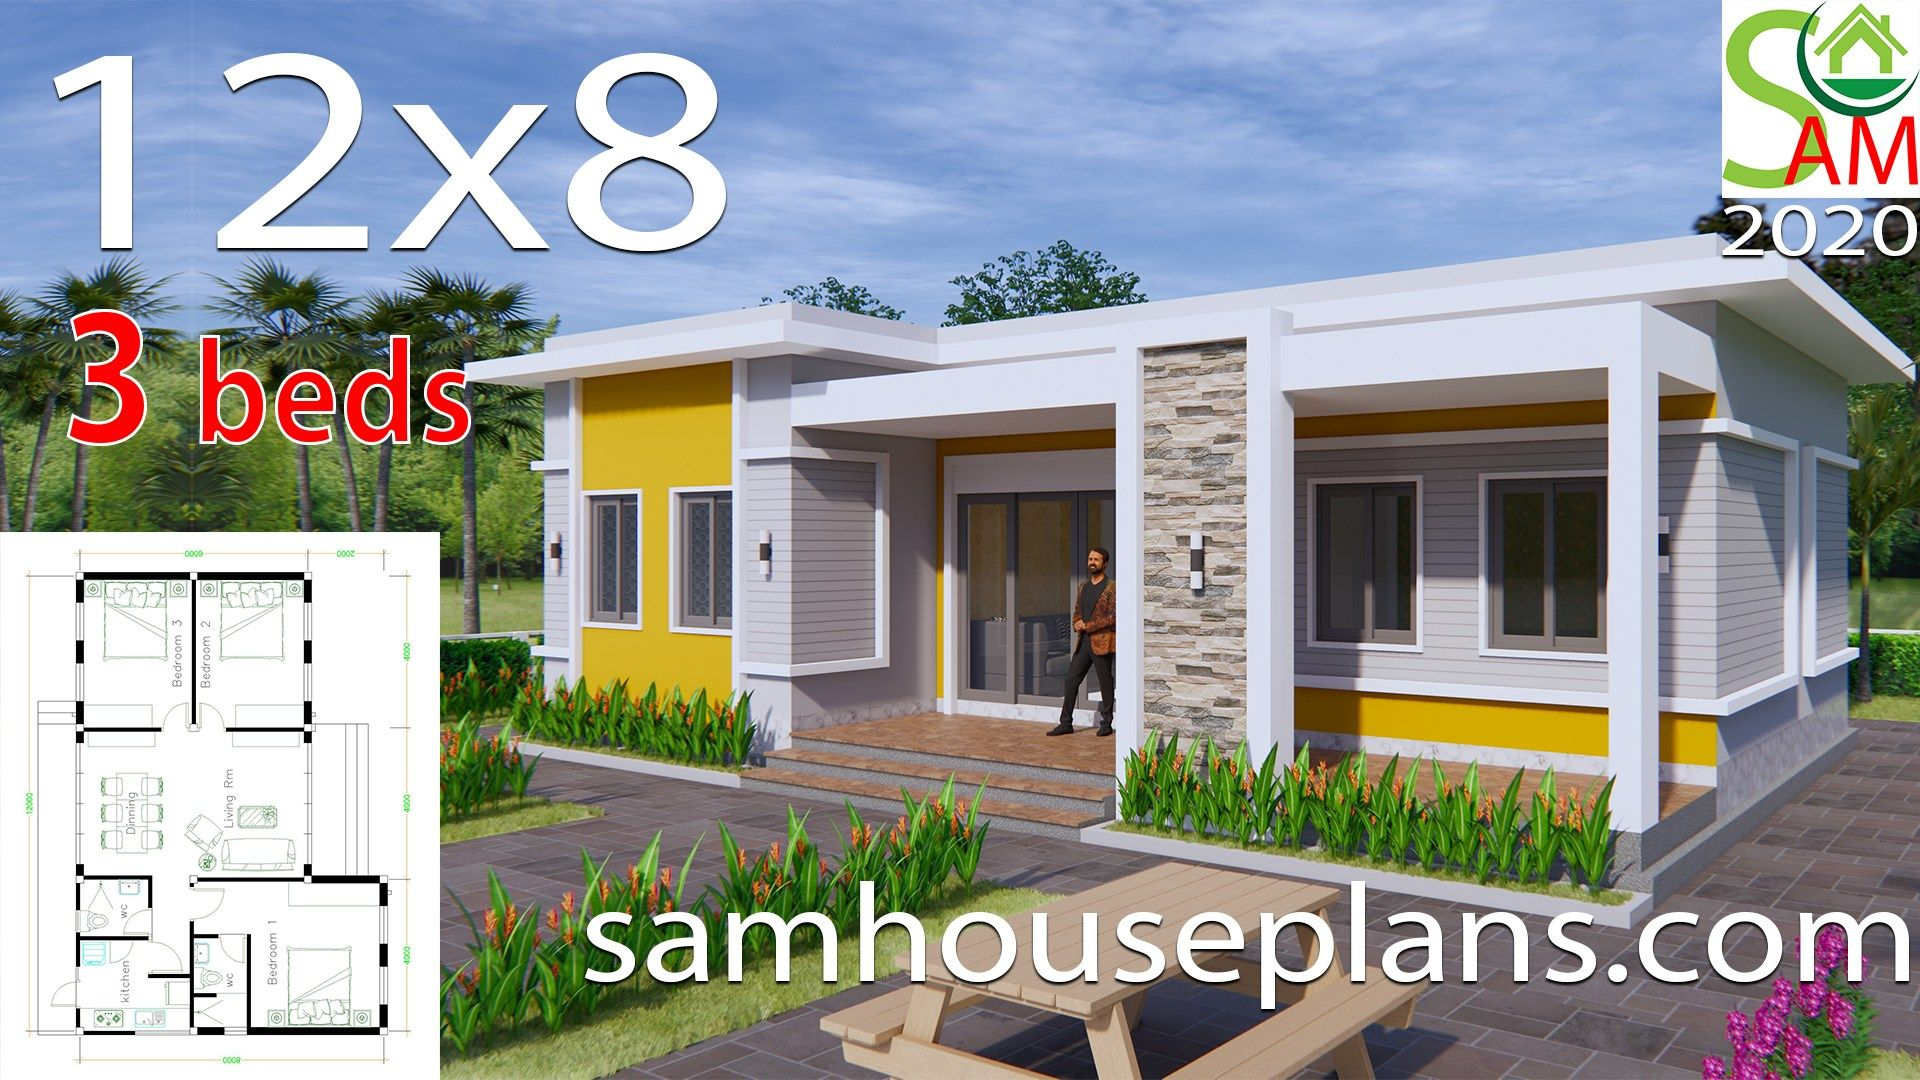 House Plans 12x8 With 3 Bedrooms Terrace Roof Sam House Plans In 2020 One Bedroom House Plans One Bedroom House Duplex House Plans